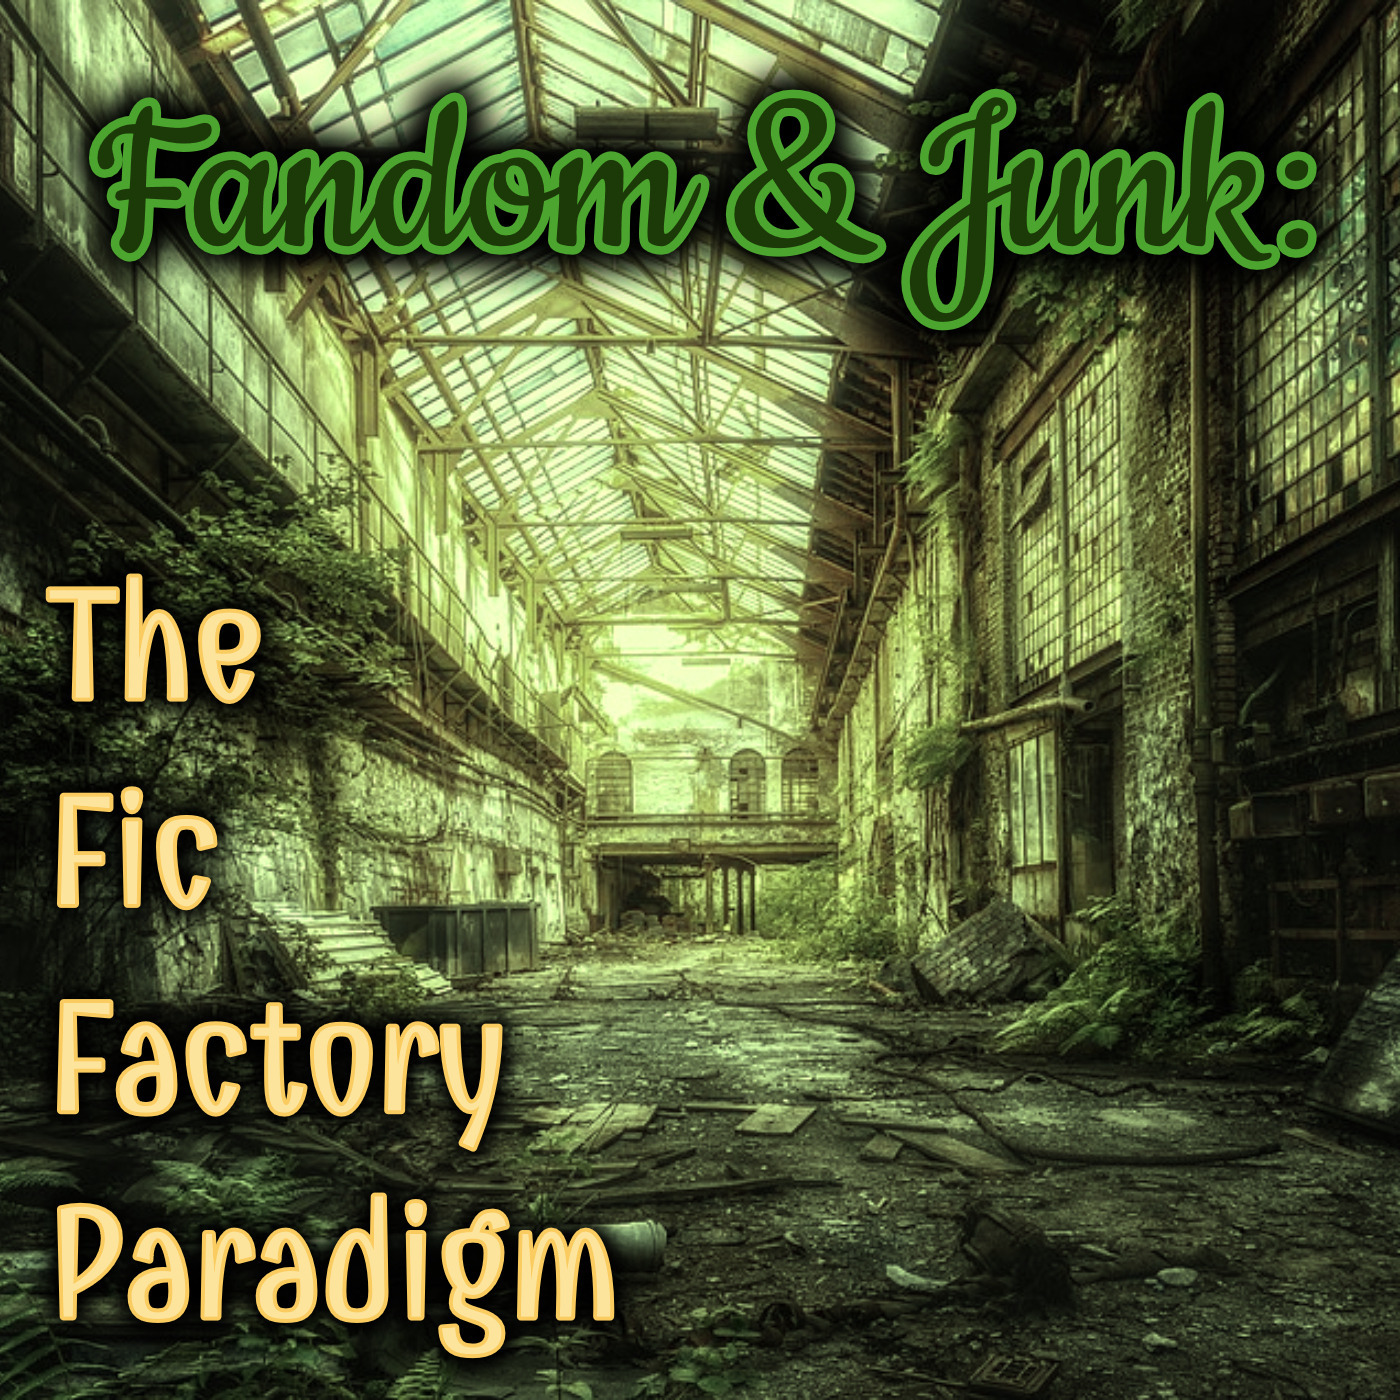 Fandom & Junk: The Fic Factory Paradigm